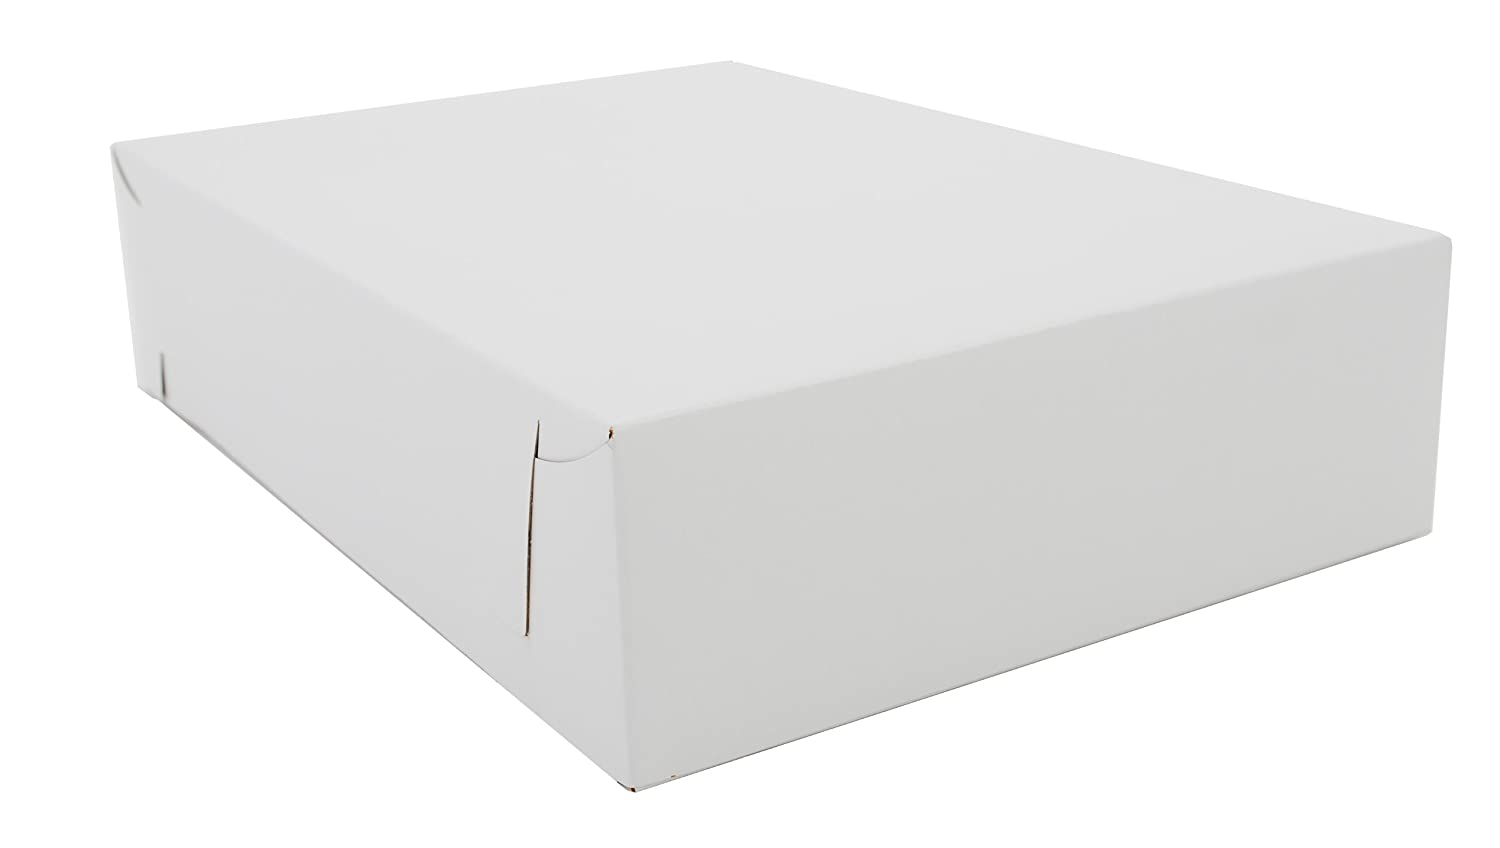 "Southern Champion Tray 1020 Premium Clay Coated Kraft Paperboard White Donut Tray, 13"" Length x 9"" Width x 3"" Height (Case of 200 Pieces)"